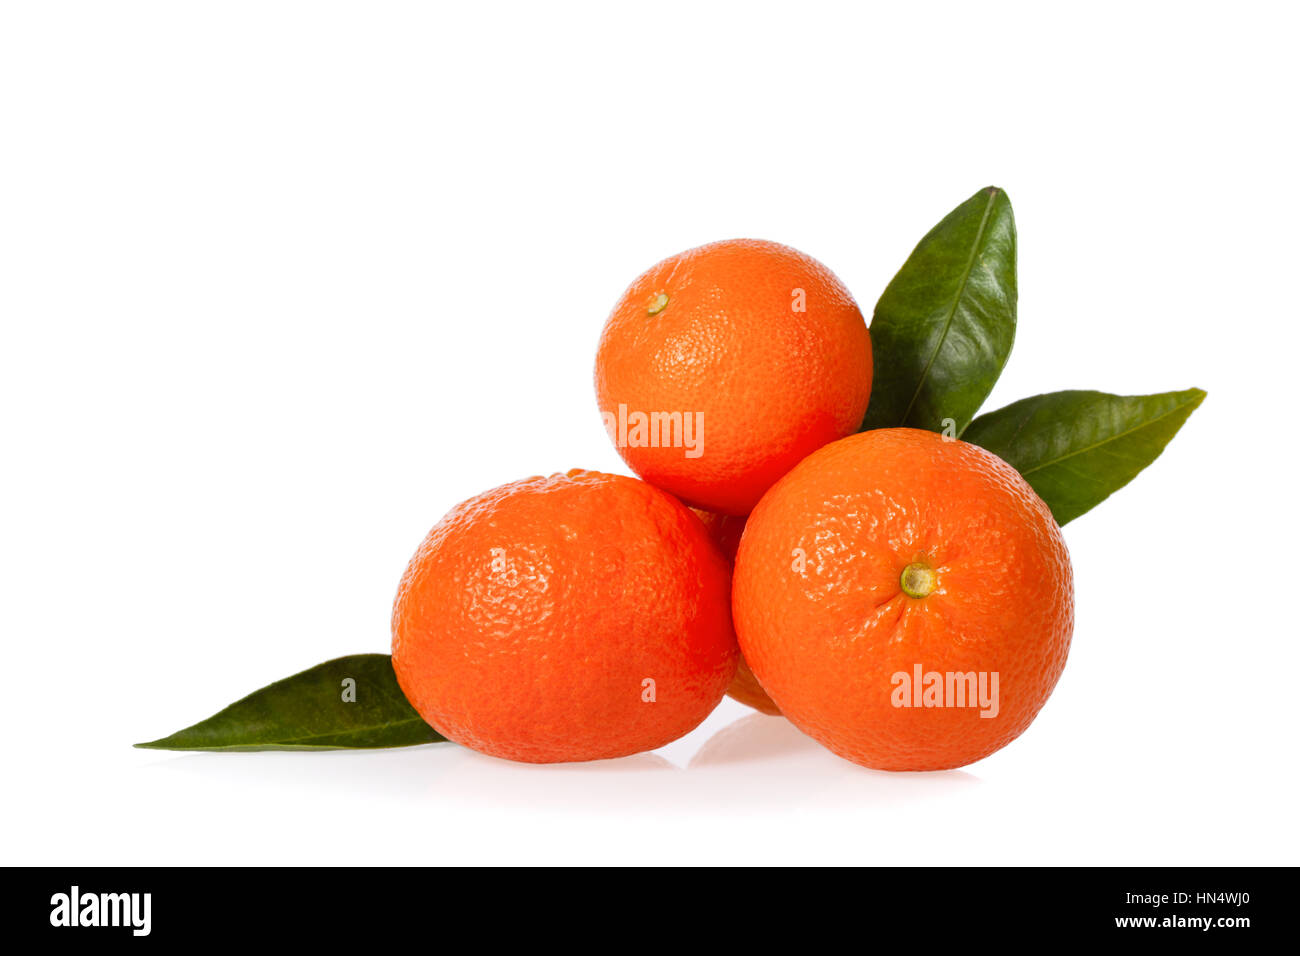 Clementines isolated on white background - Stock Image